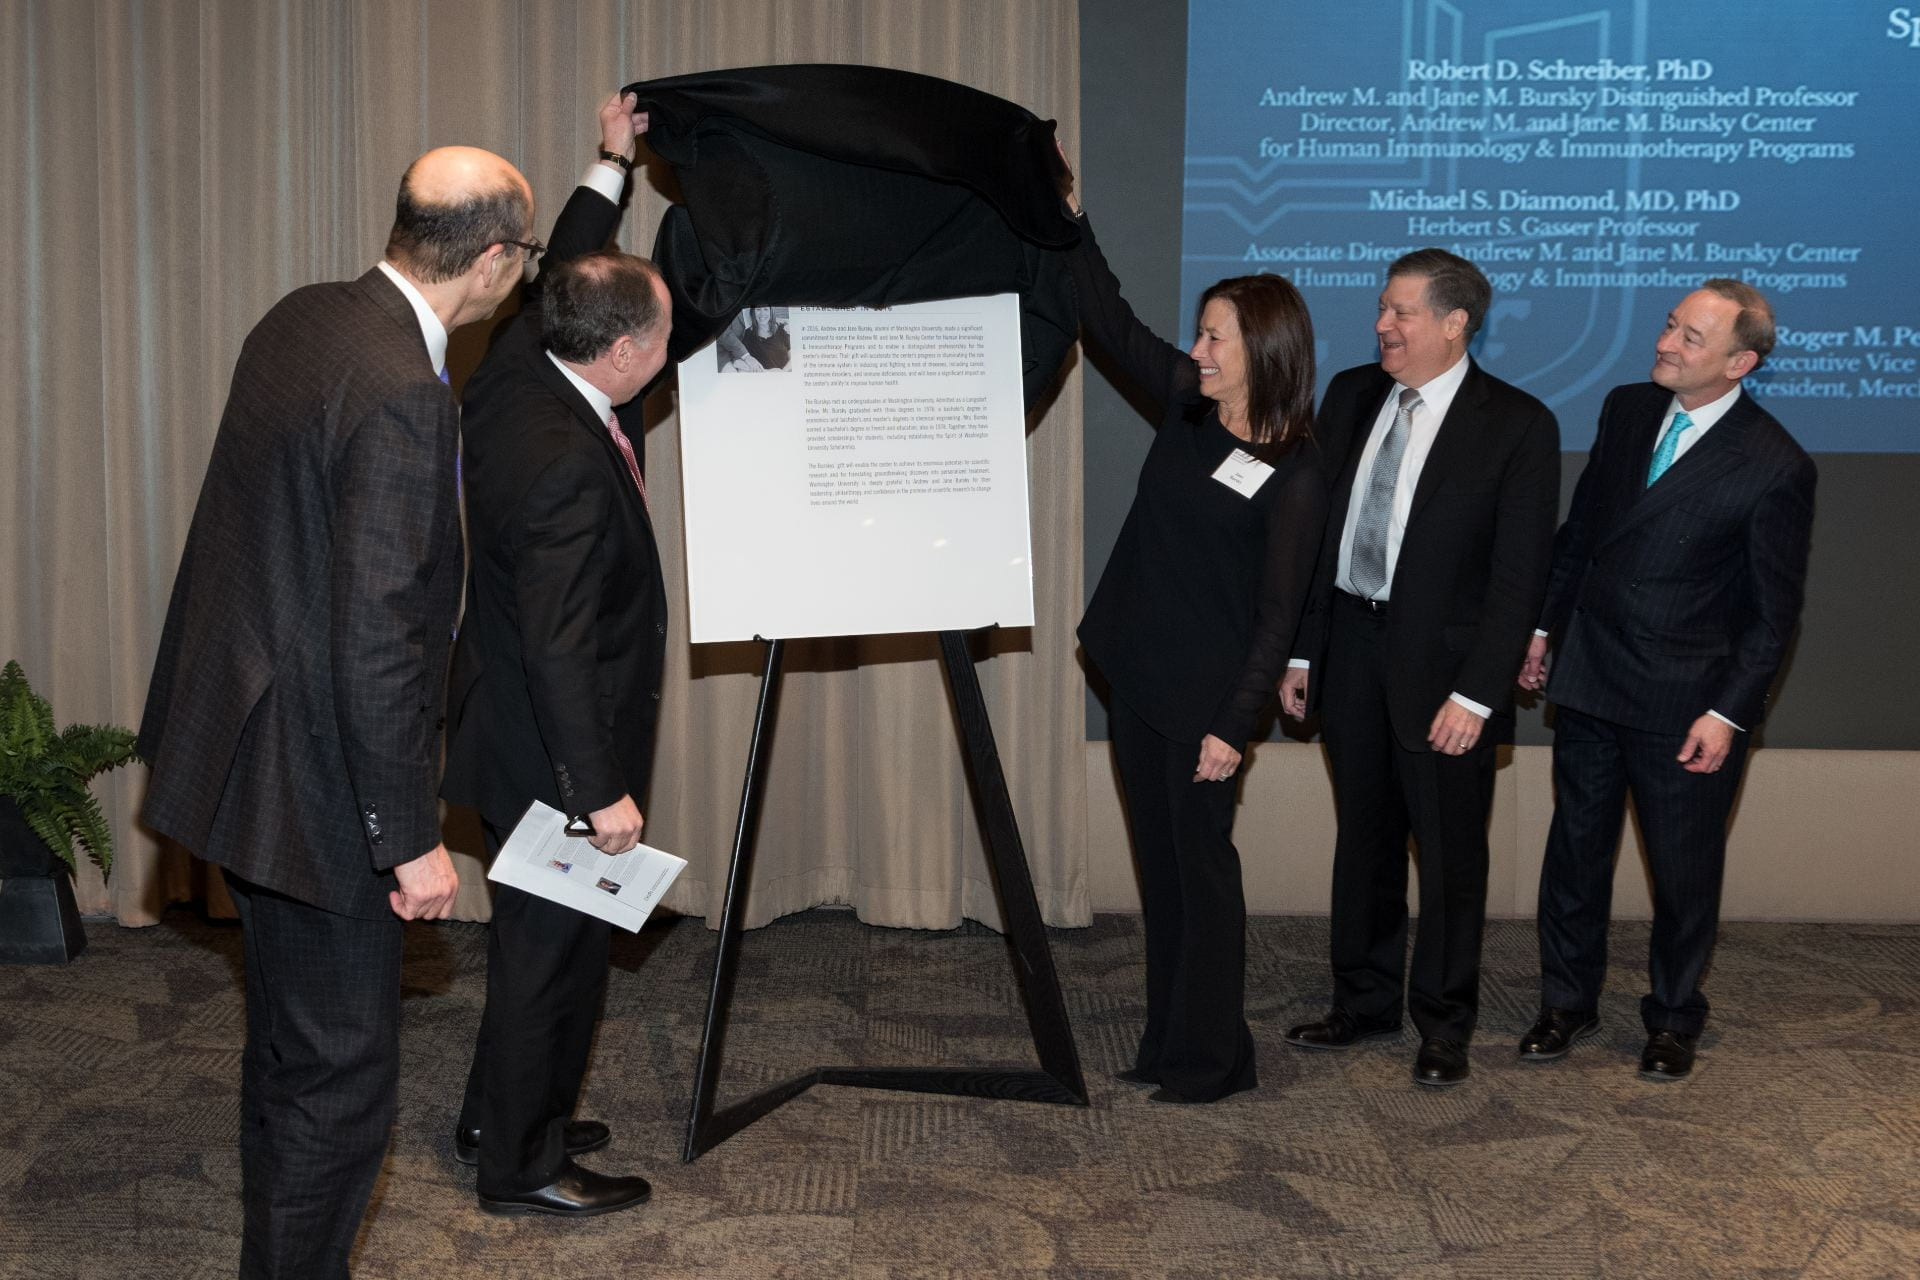 Unveiling of the plaque honoring the creation of the Bursky Center. Dean Perlmutter, Andy Bursky, Jane Bursky, Bob Schreiber and Chancellor Wrighton (left to right).